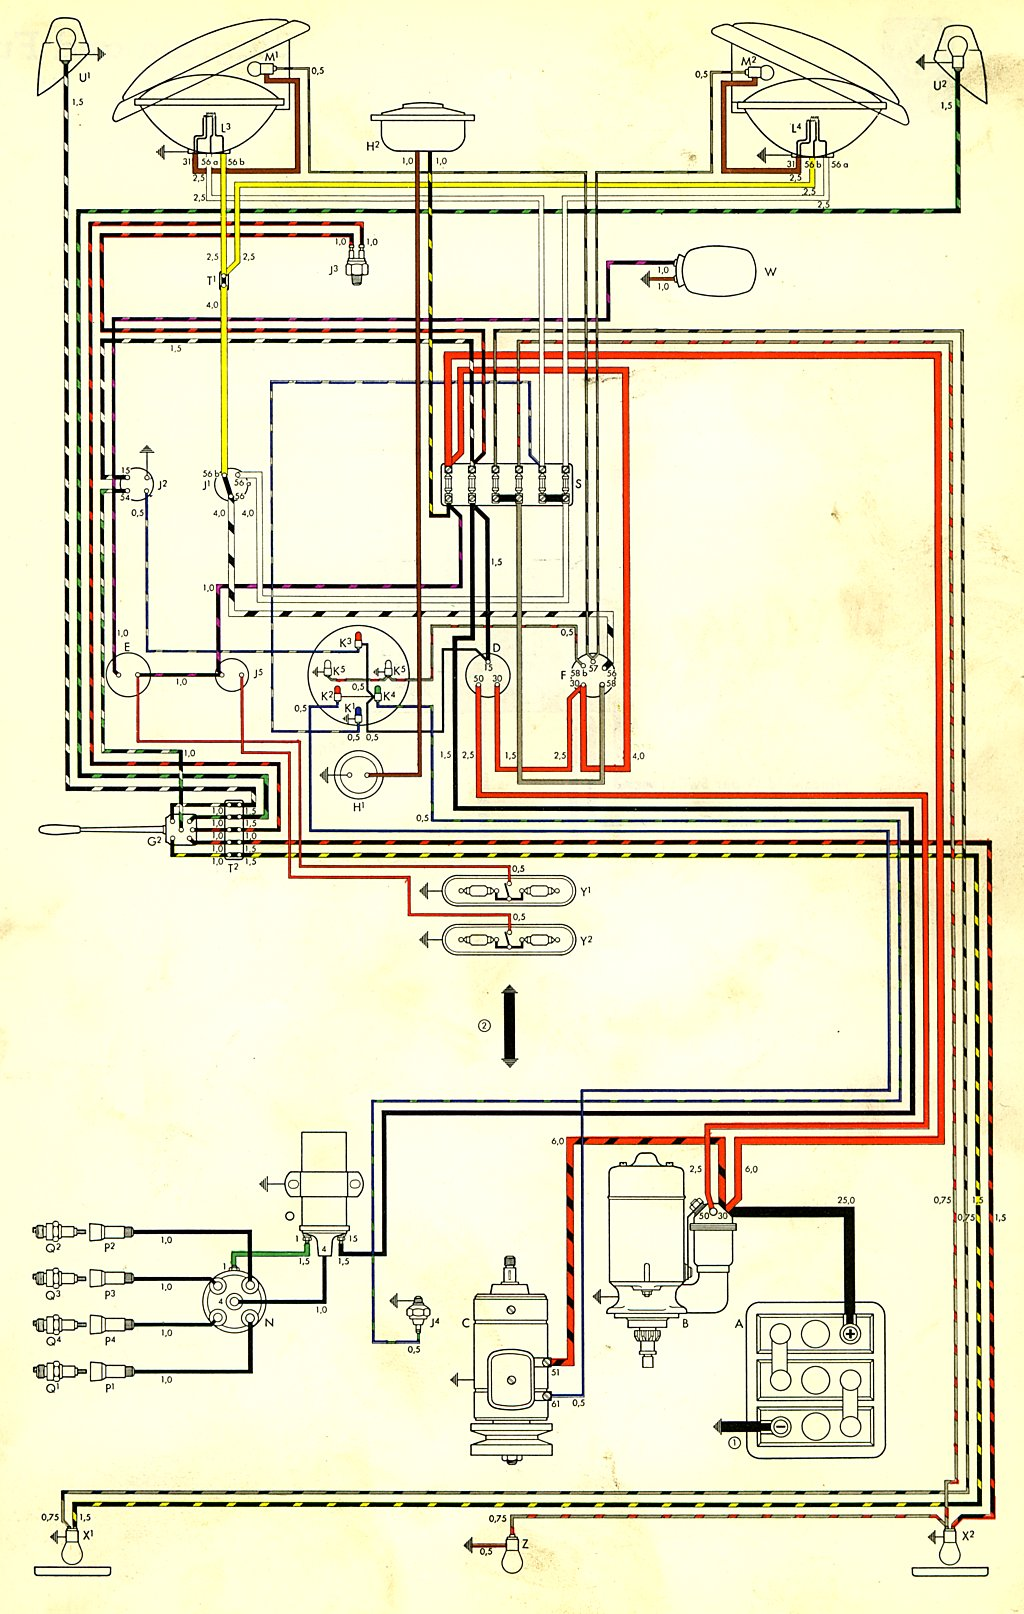 T1 Wiring Diagram Pdf - Technical Diagrams on